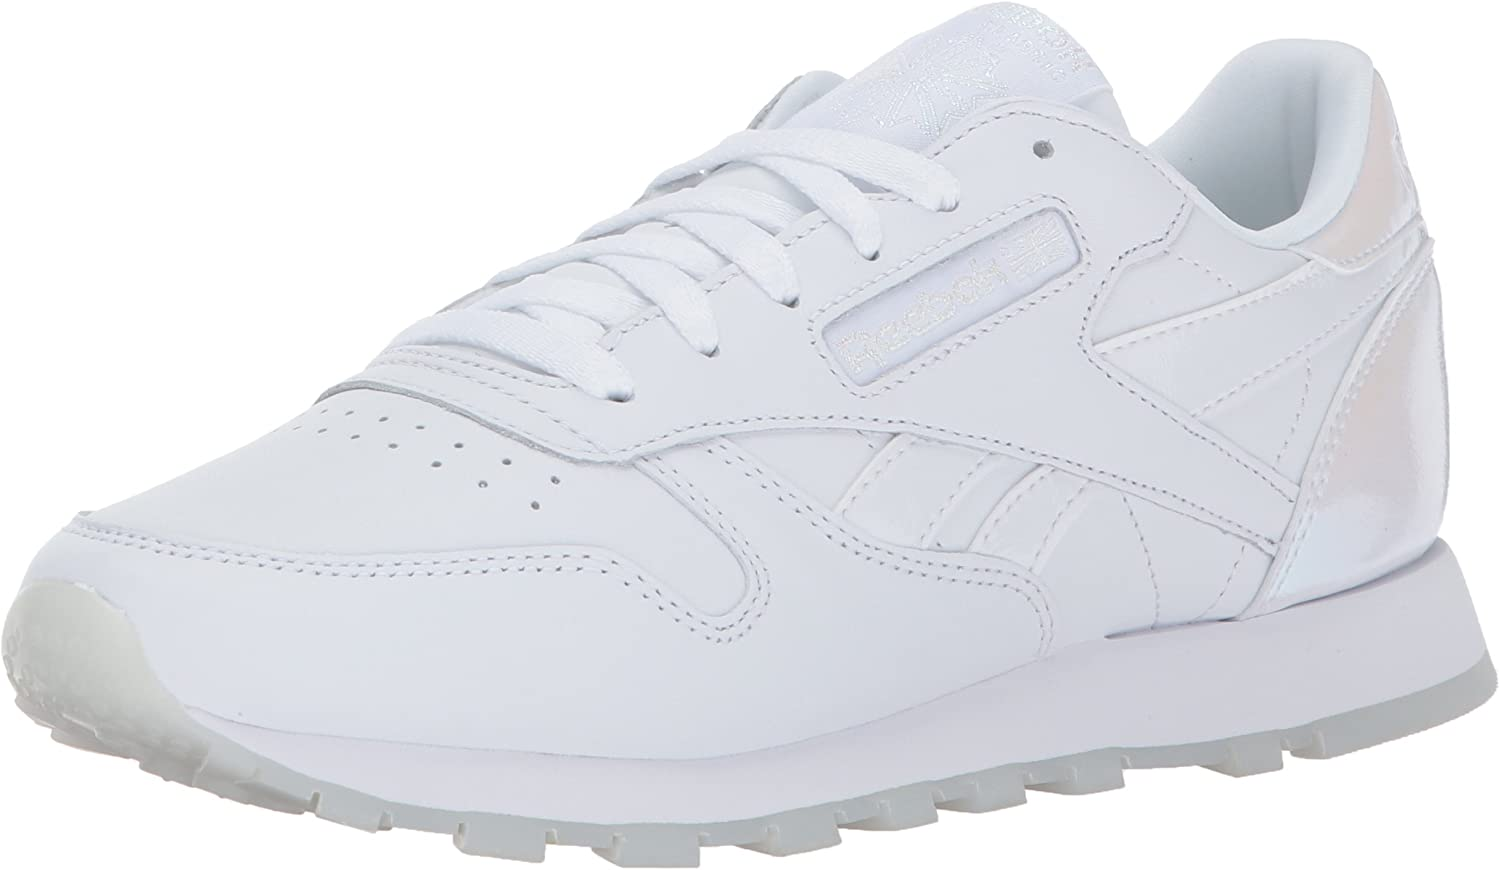 Reebok Women's Classic Leather Melted Metal Fashion Sneakers